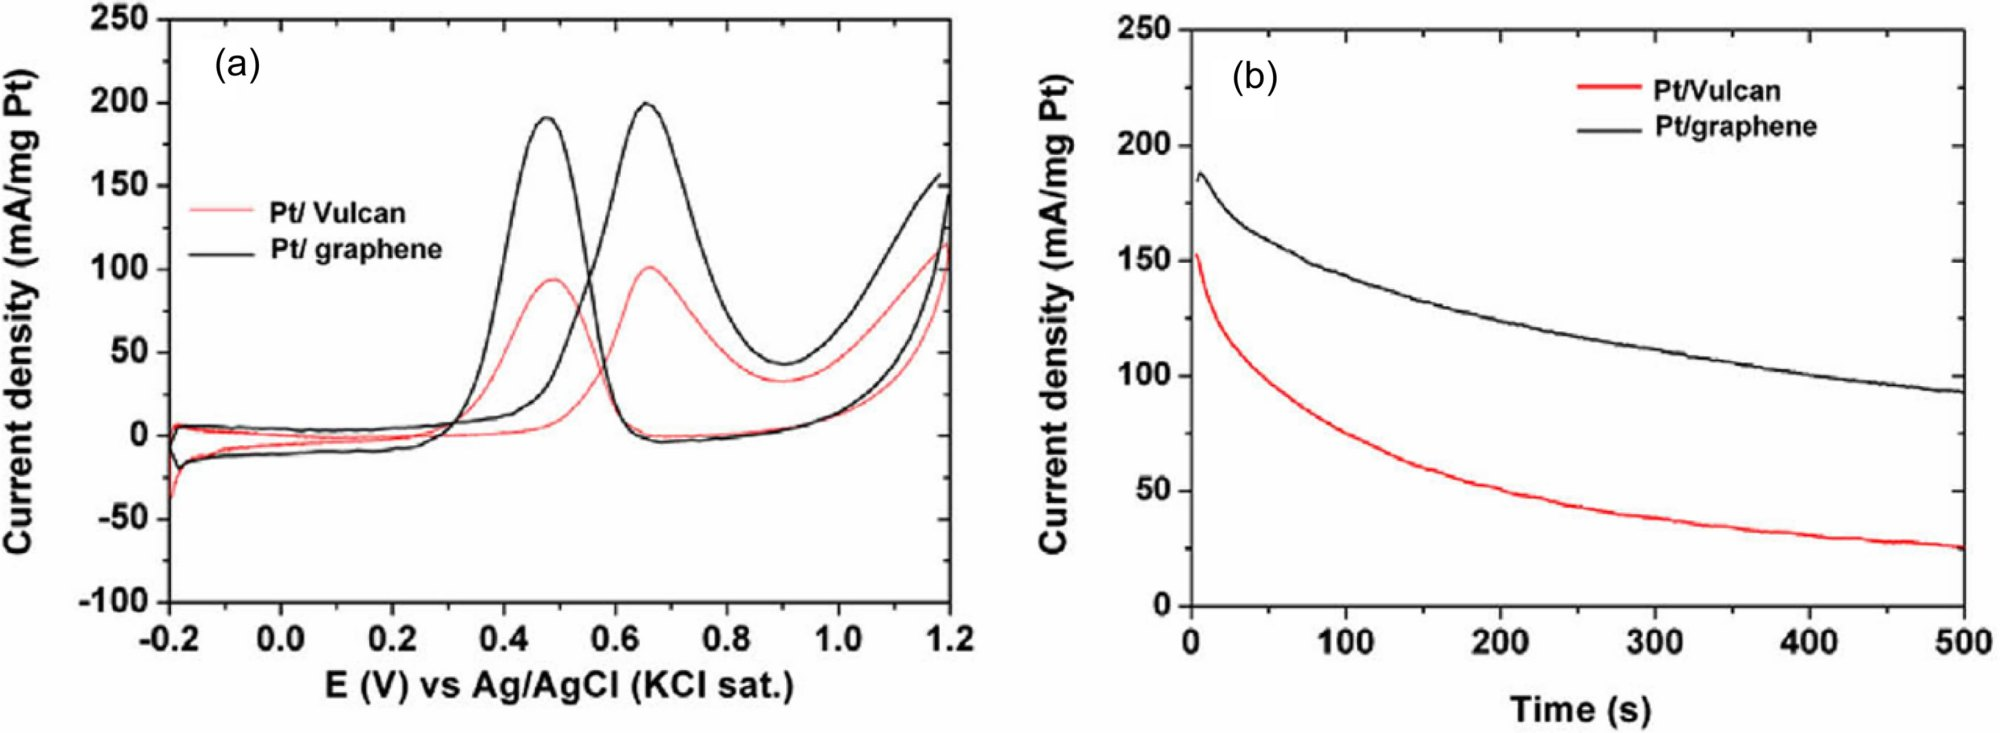 hight resolution of  a cyclic voltammograms of pt graphene and pt vulcan in nitrogen saturated aqueous solution of 0 5 m h2so4 containing 0 5 m ch3oh at a scan rate of 50